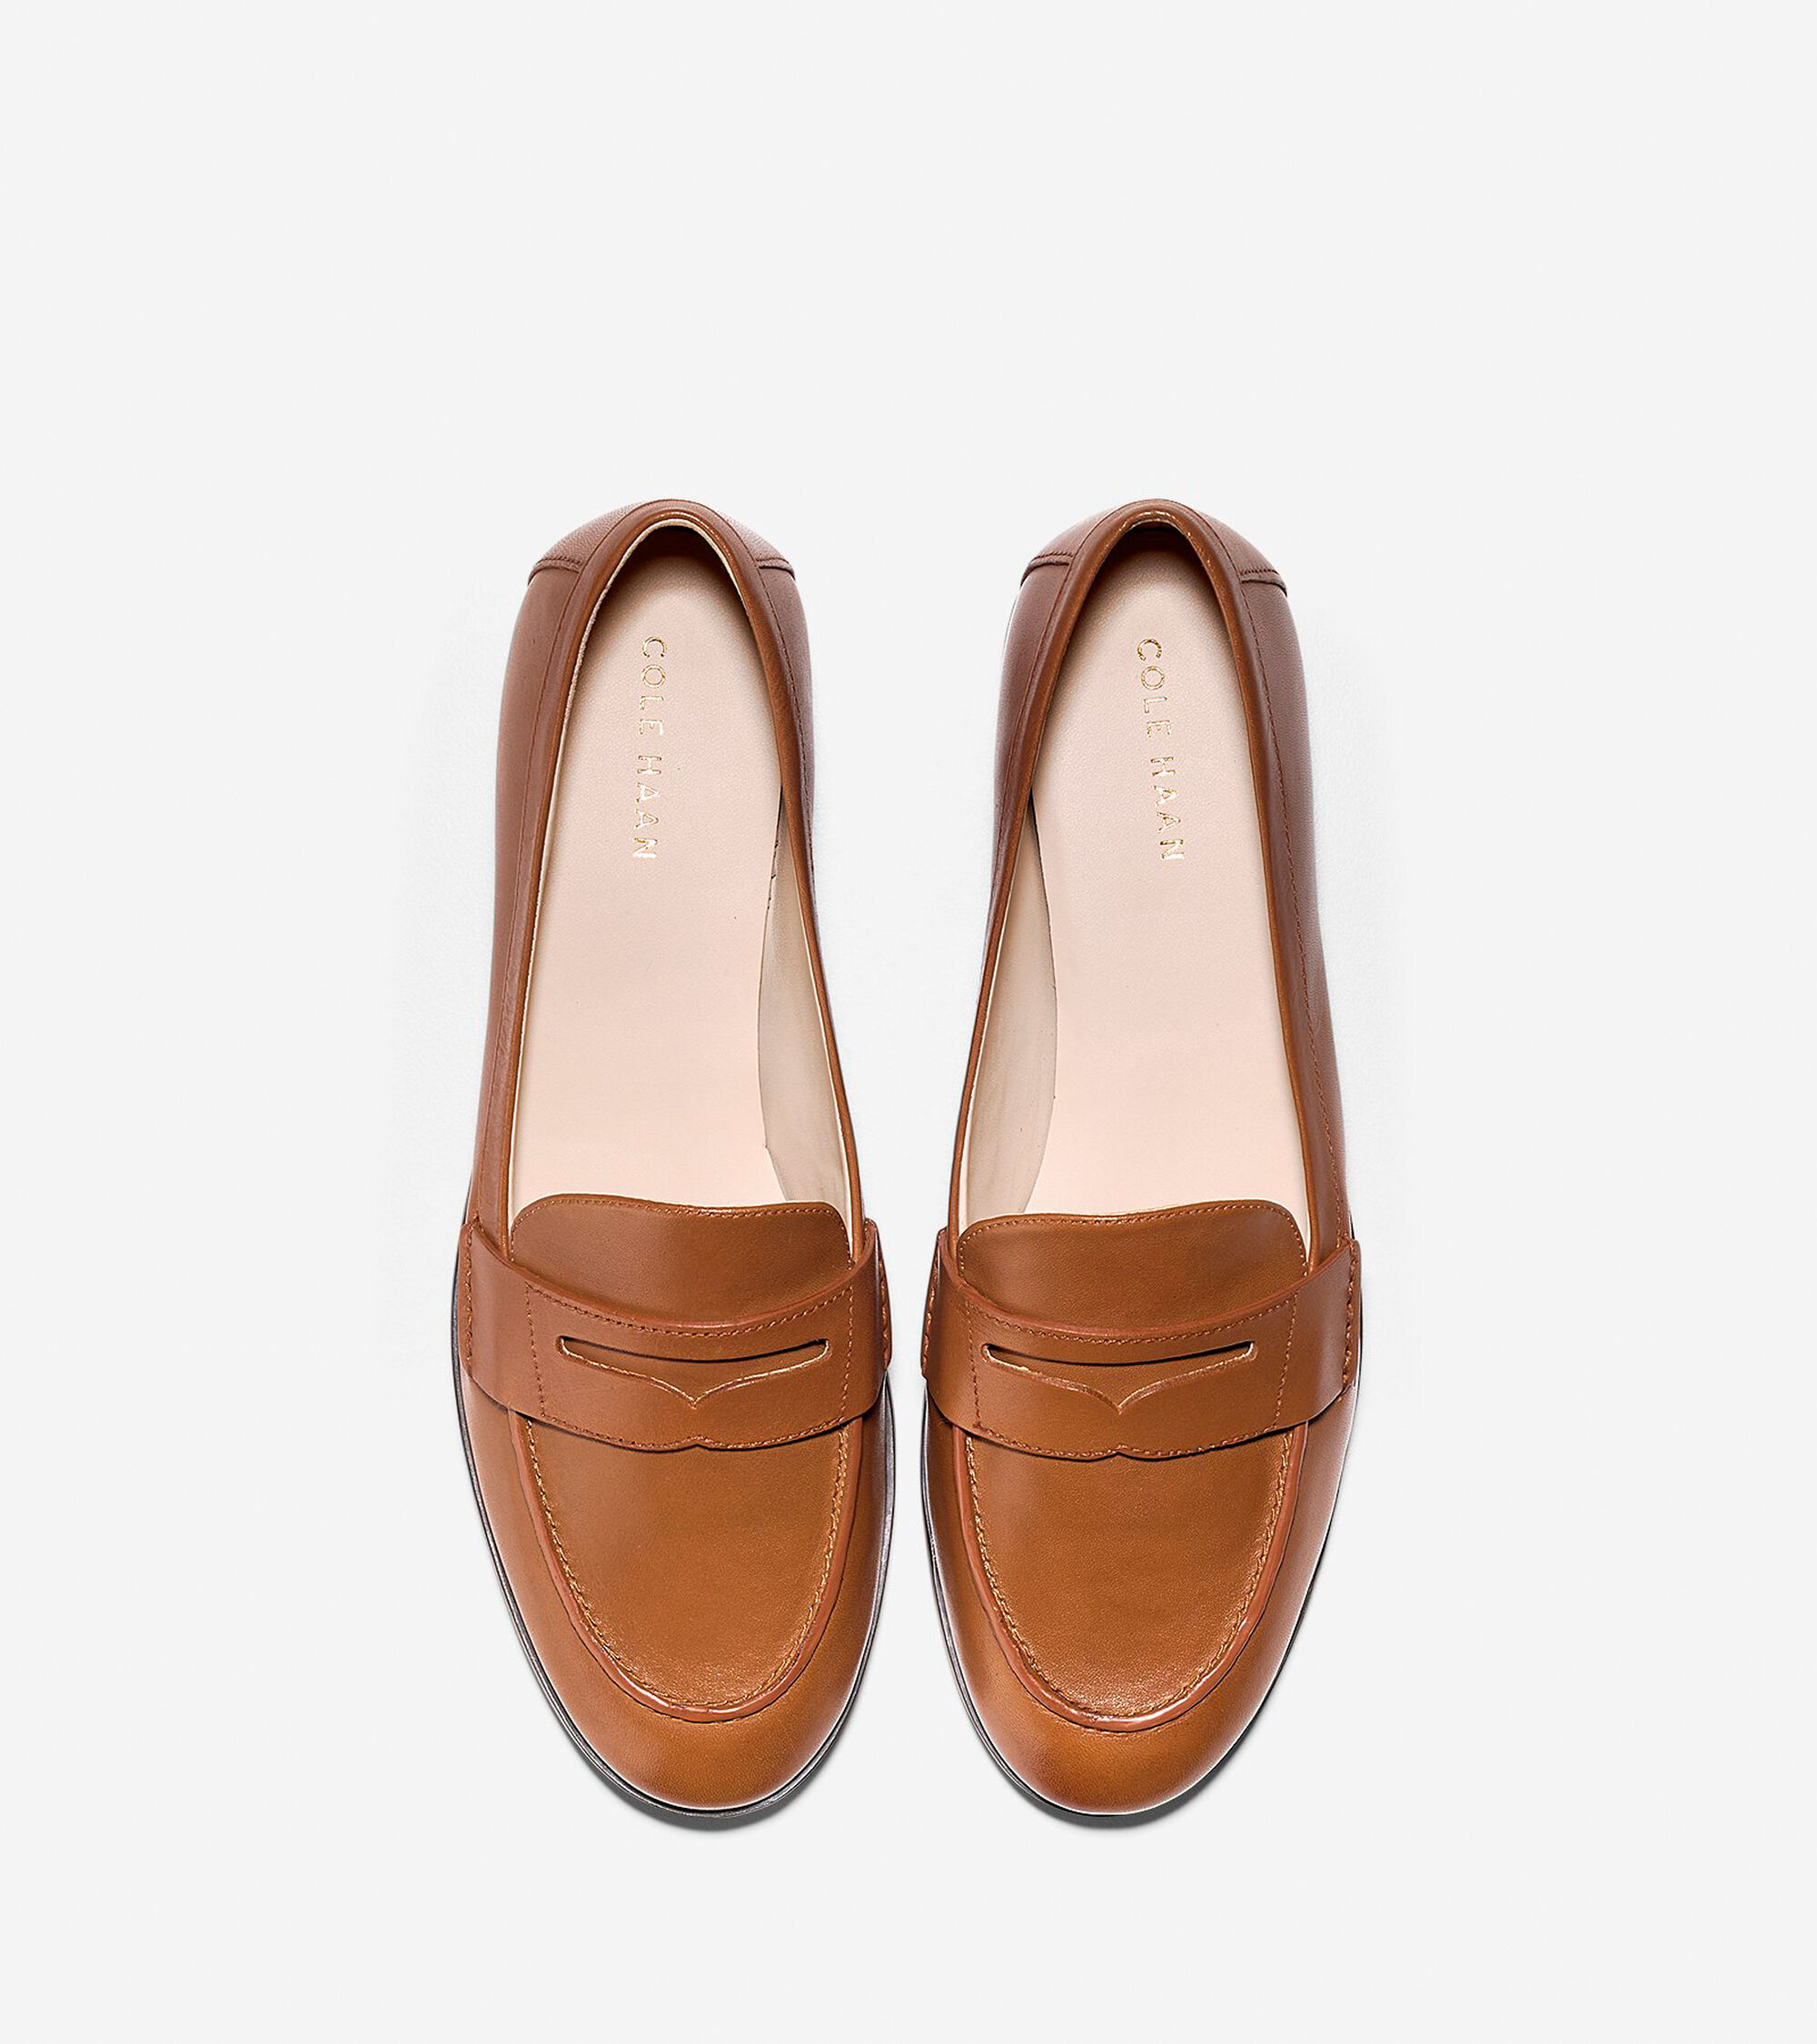 62cf85f5548 ... Women s Pinch Grand Penny Loafer  Women s Pinch Grand Penny Loafer   Women s Pinch Grand Penny Loafer.  COLEHAAN